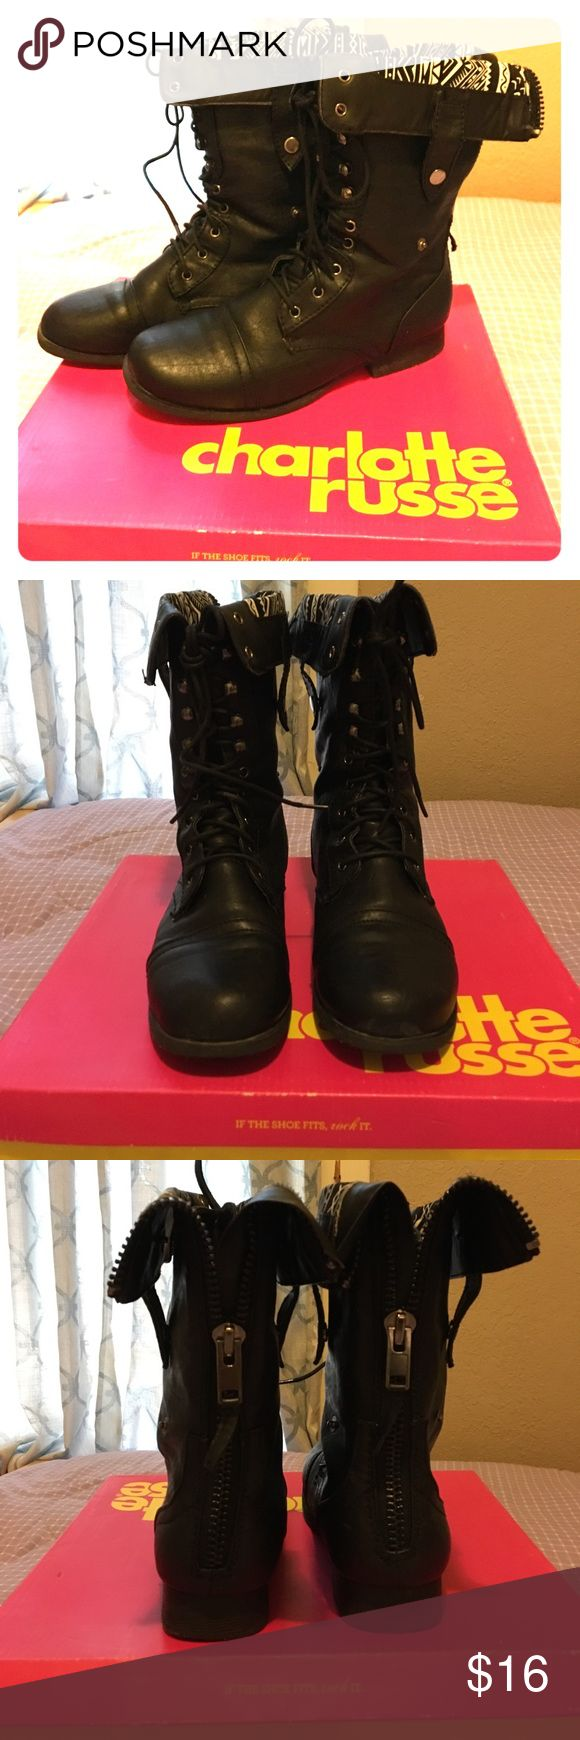 Charlotte Russe black boots Short to medium size boots. Lace up and zip up style boots. Black with black and white pattern inside. Size 9 women's. True to size. Used but still in good condition. Have original box. Clean & no damages. Charlotte Russe Shoes Combat & Moto Boots